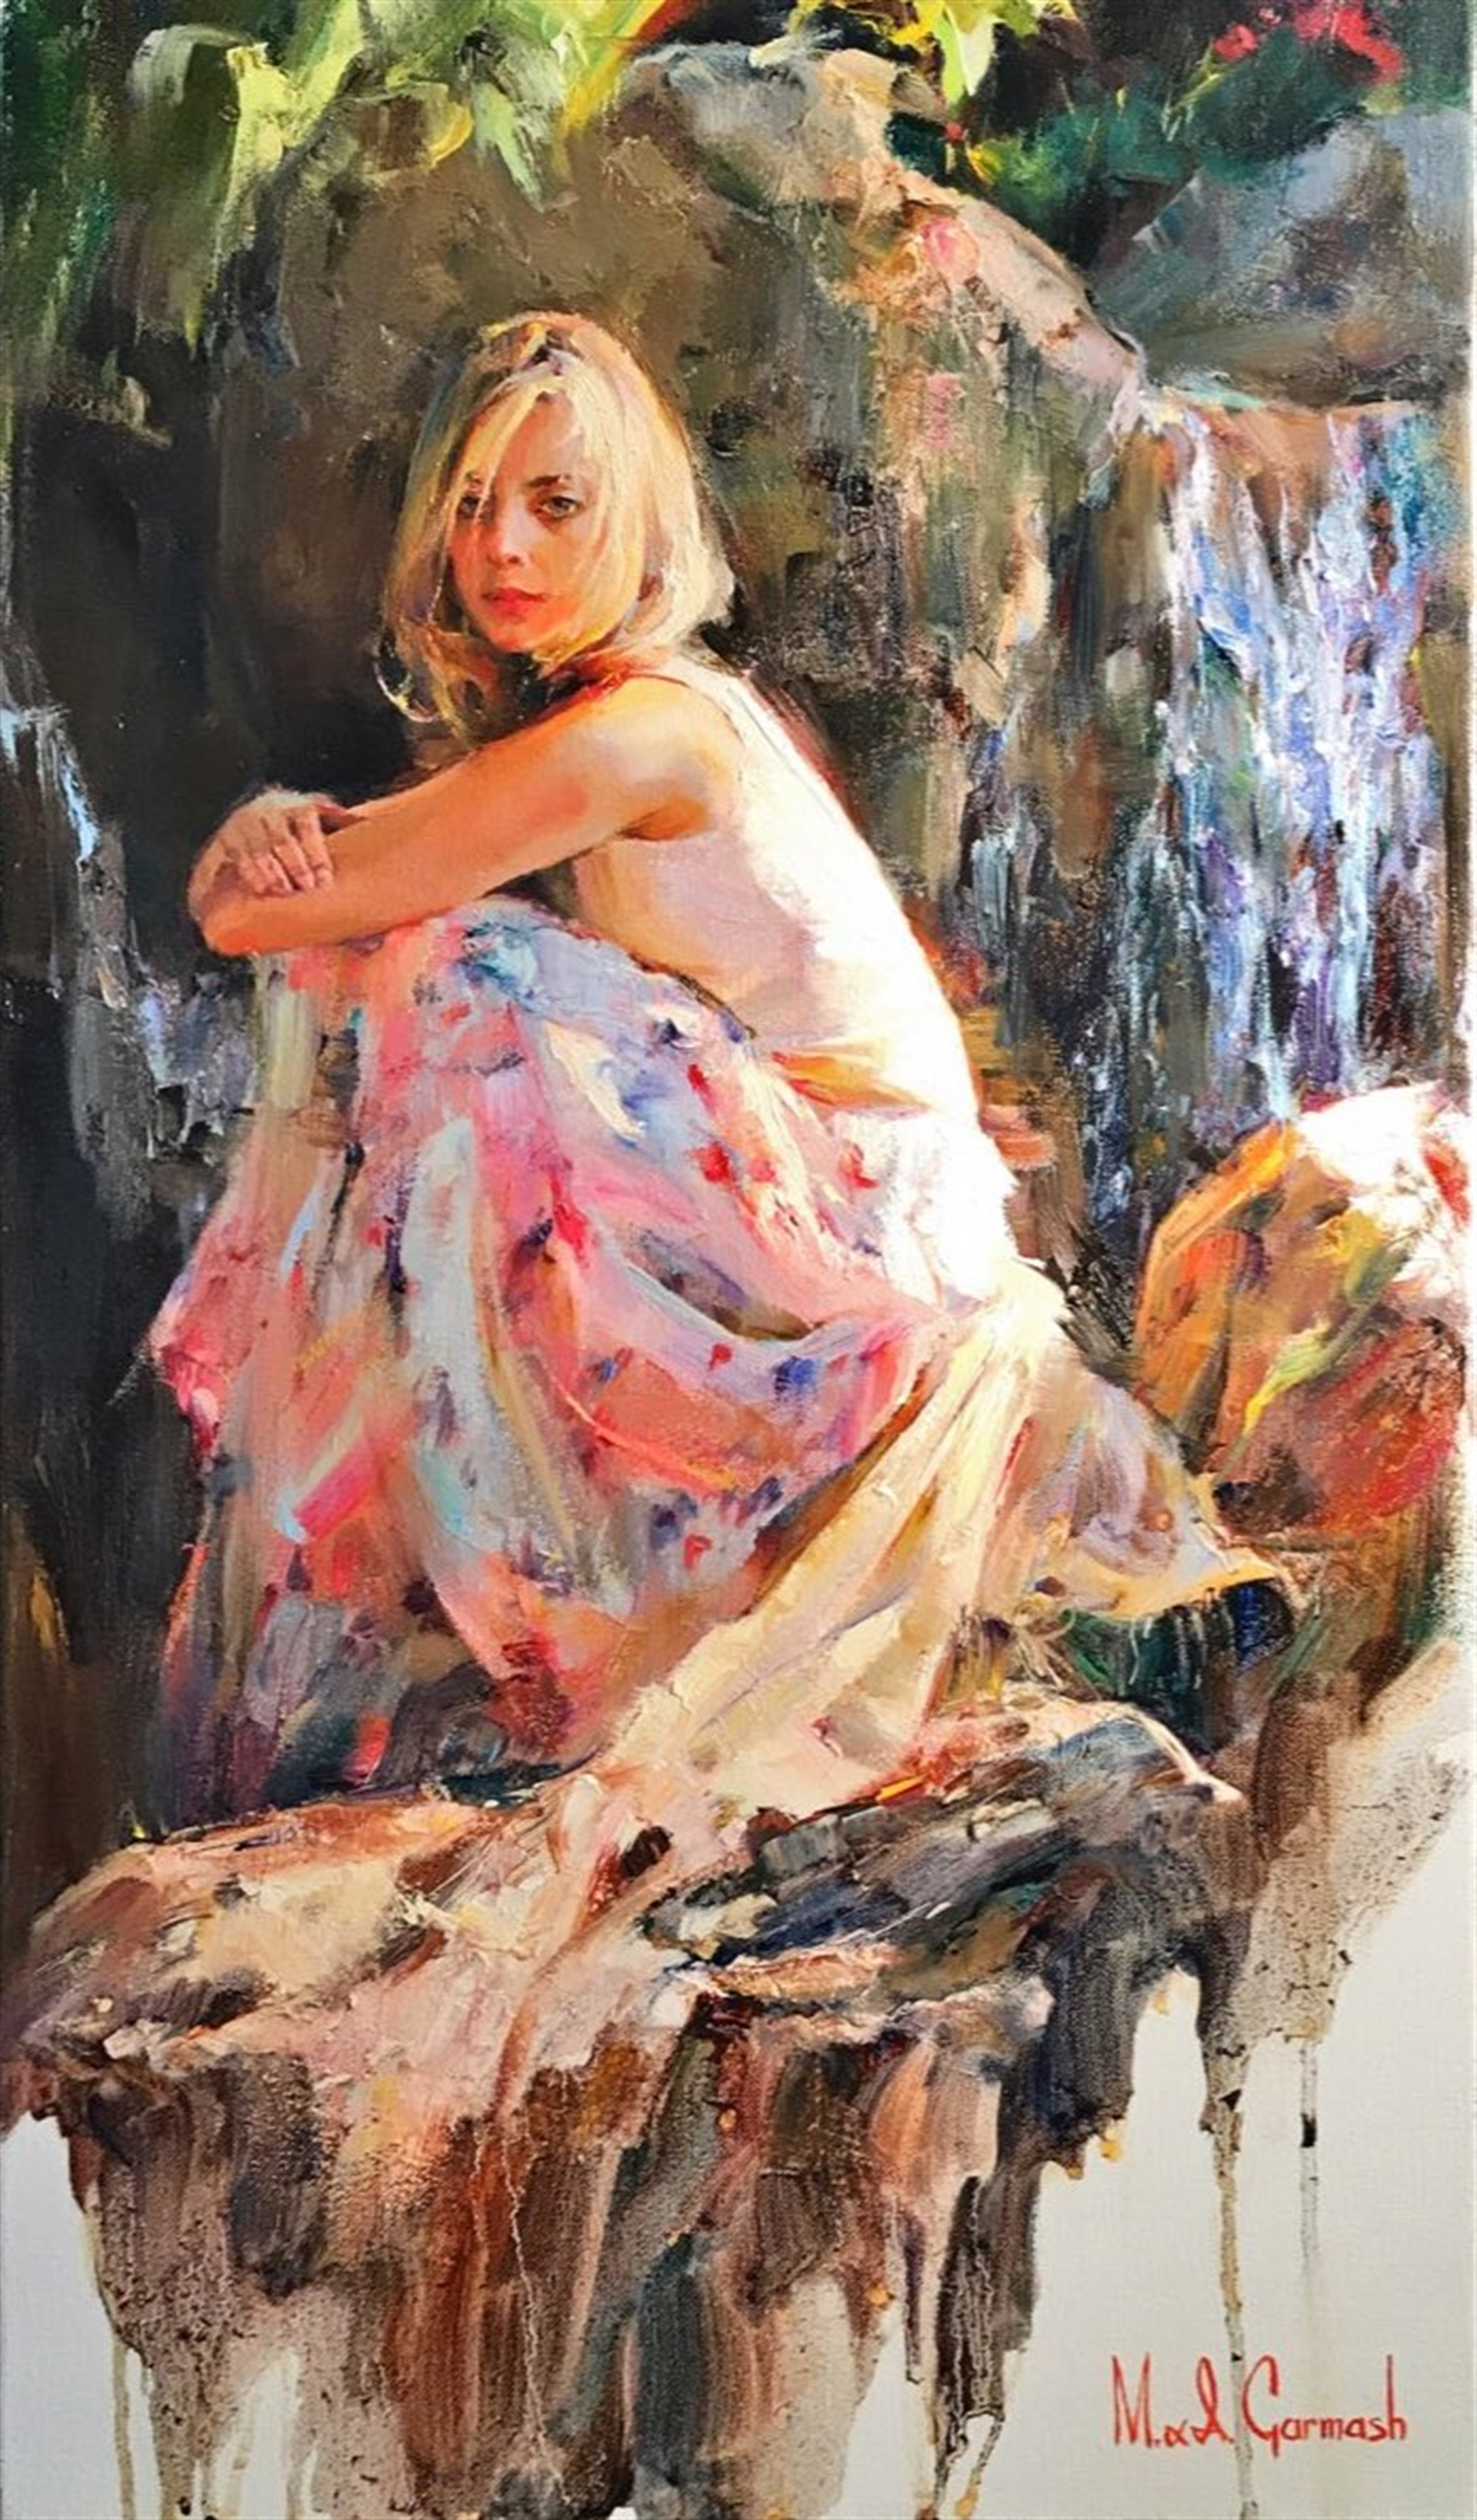 Nymph of the Waterfall by Michael And Inessa Garmash